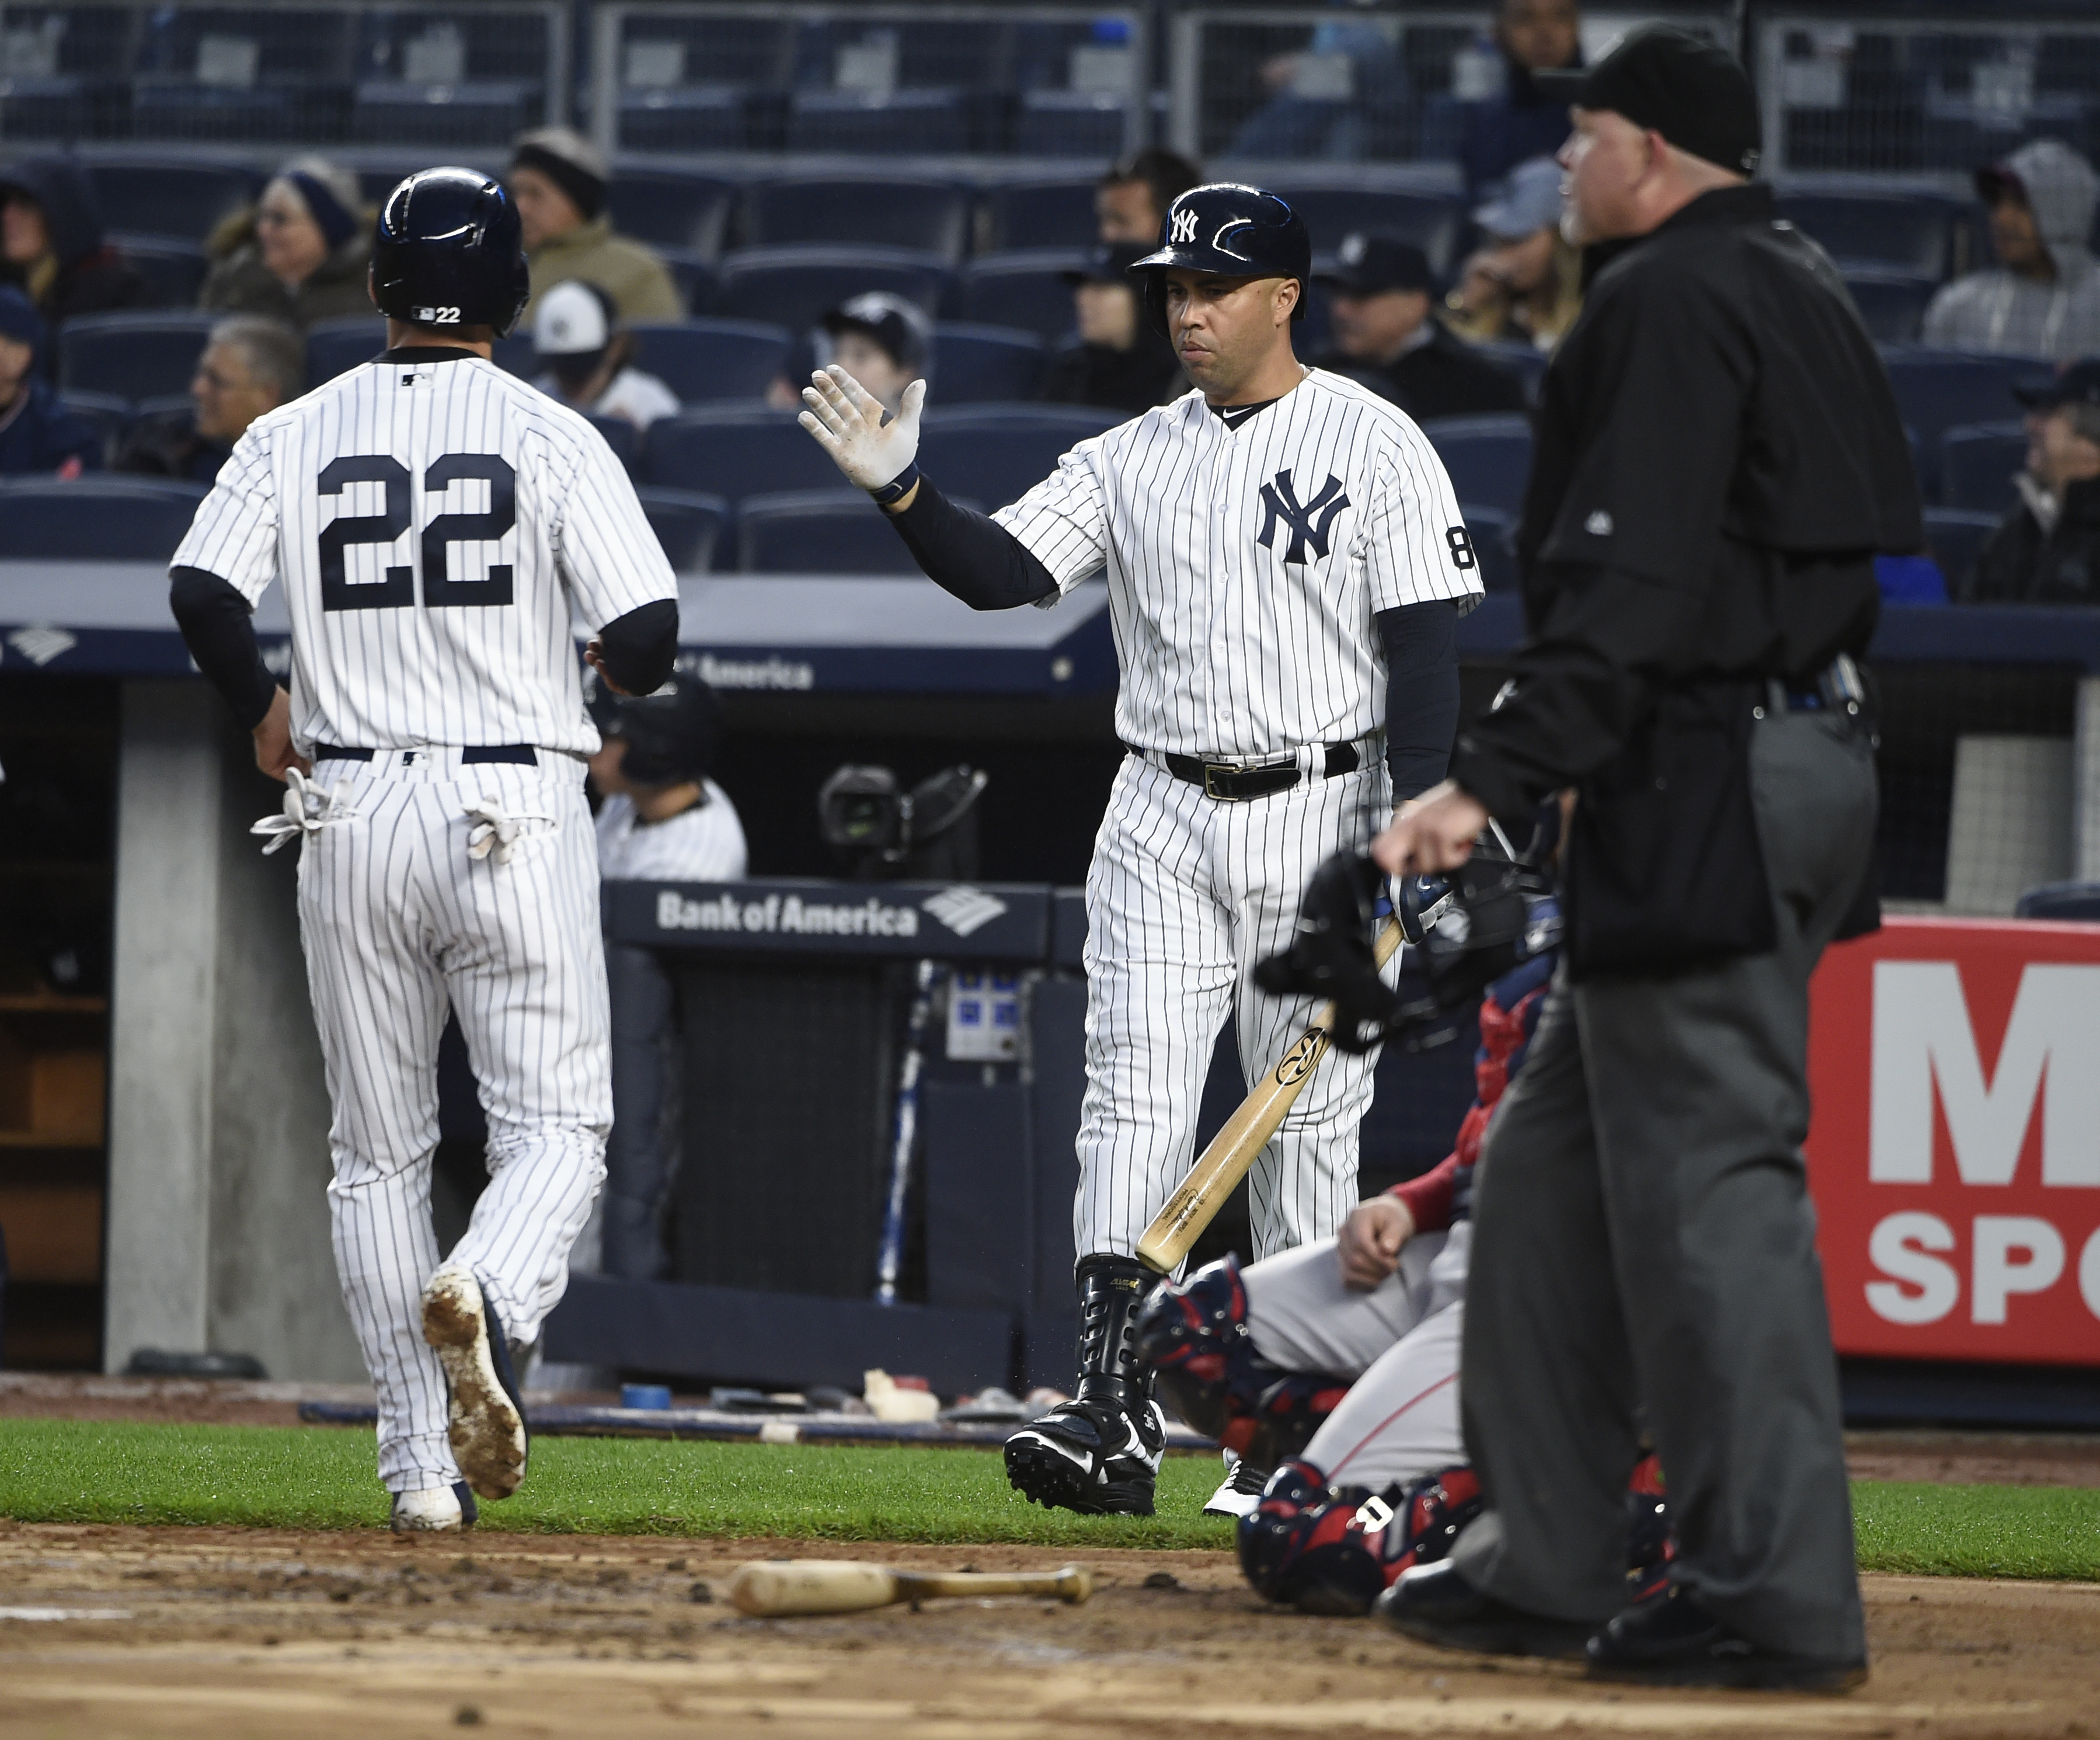 New York Yankees Carlos Beltran greets Jacoby Ellsbury (22) at home plate after Ellsbury scored on Brian McCann's single off of Boston Red Sox starting pitcher Rick Porcello in the first inning of a baseball game, Friday, May 6, 2016, in New York. (AP Pho